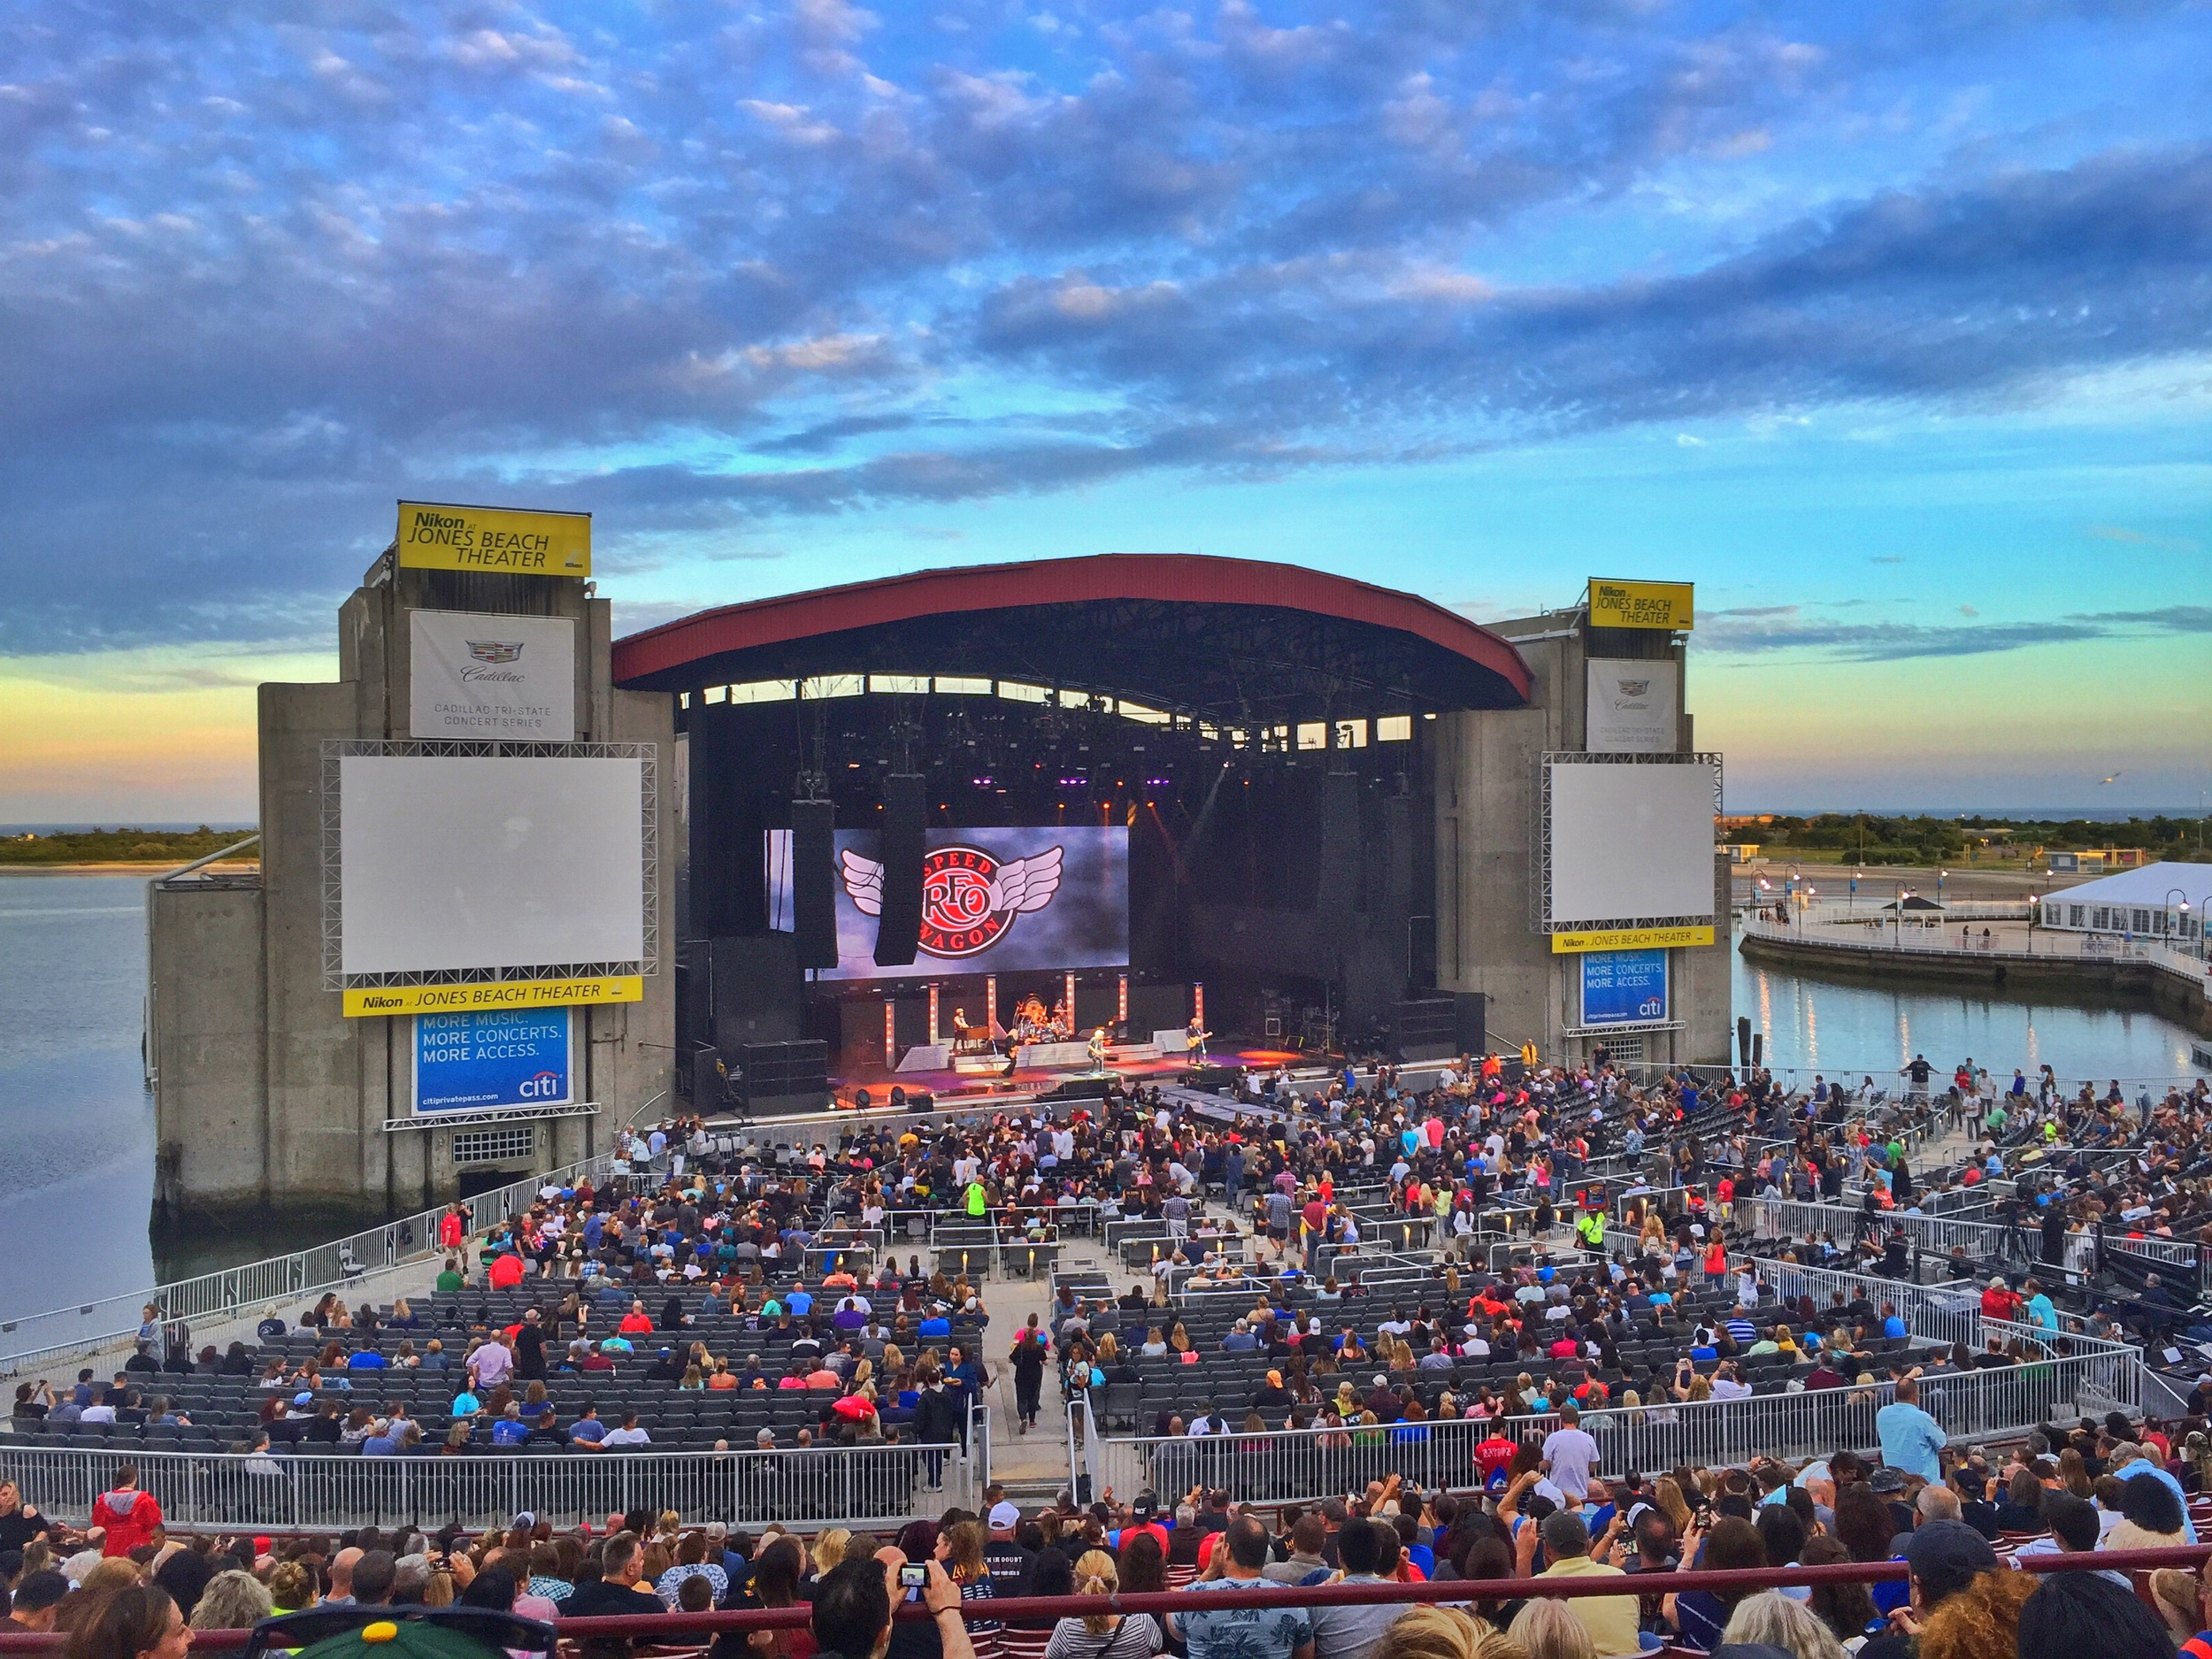 Jones Beach is a great venue to catch a summer time show.